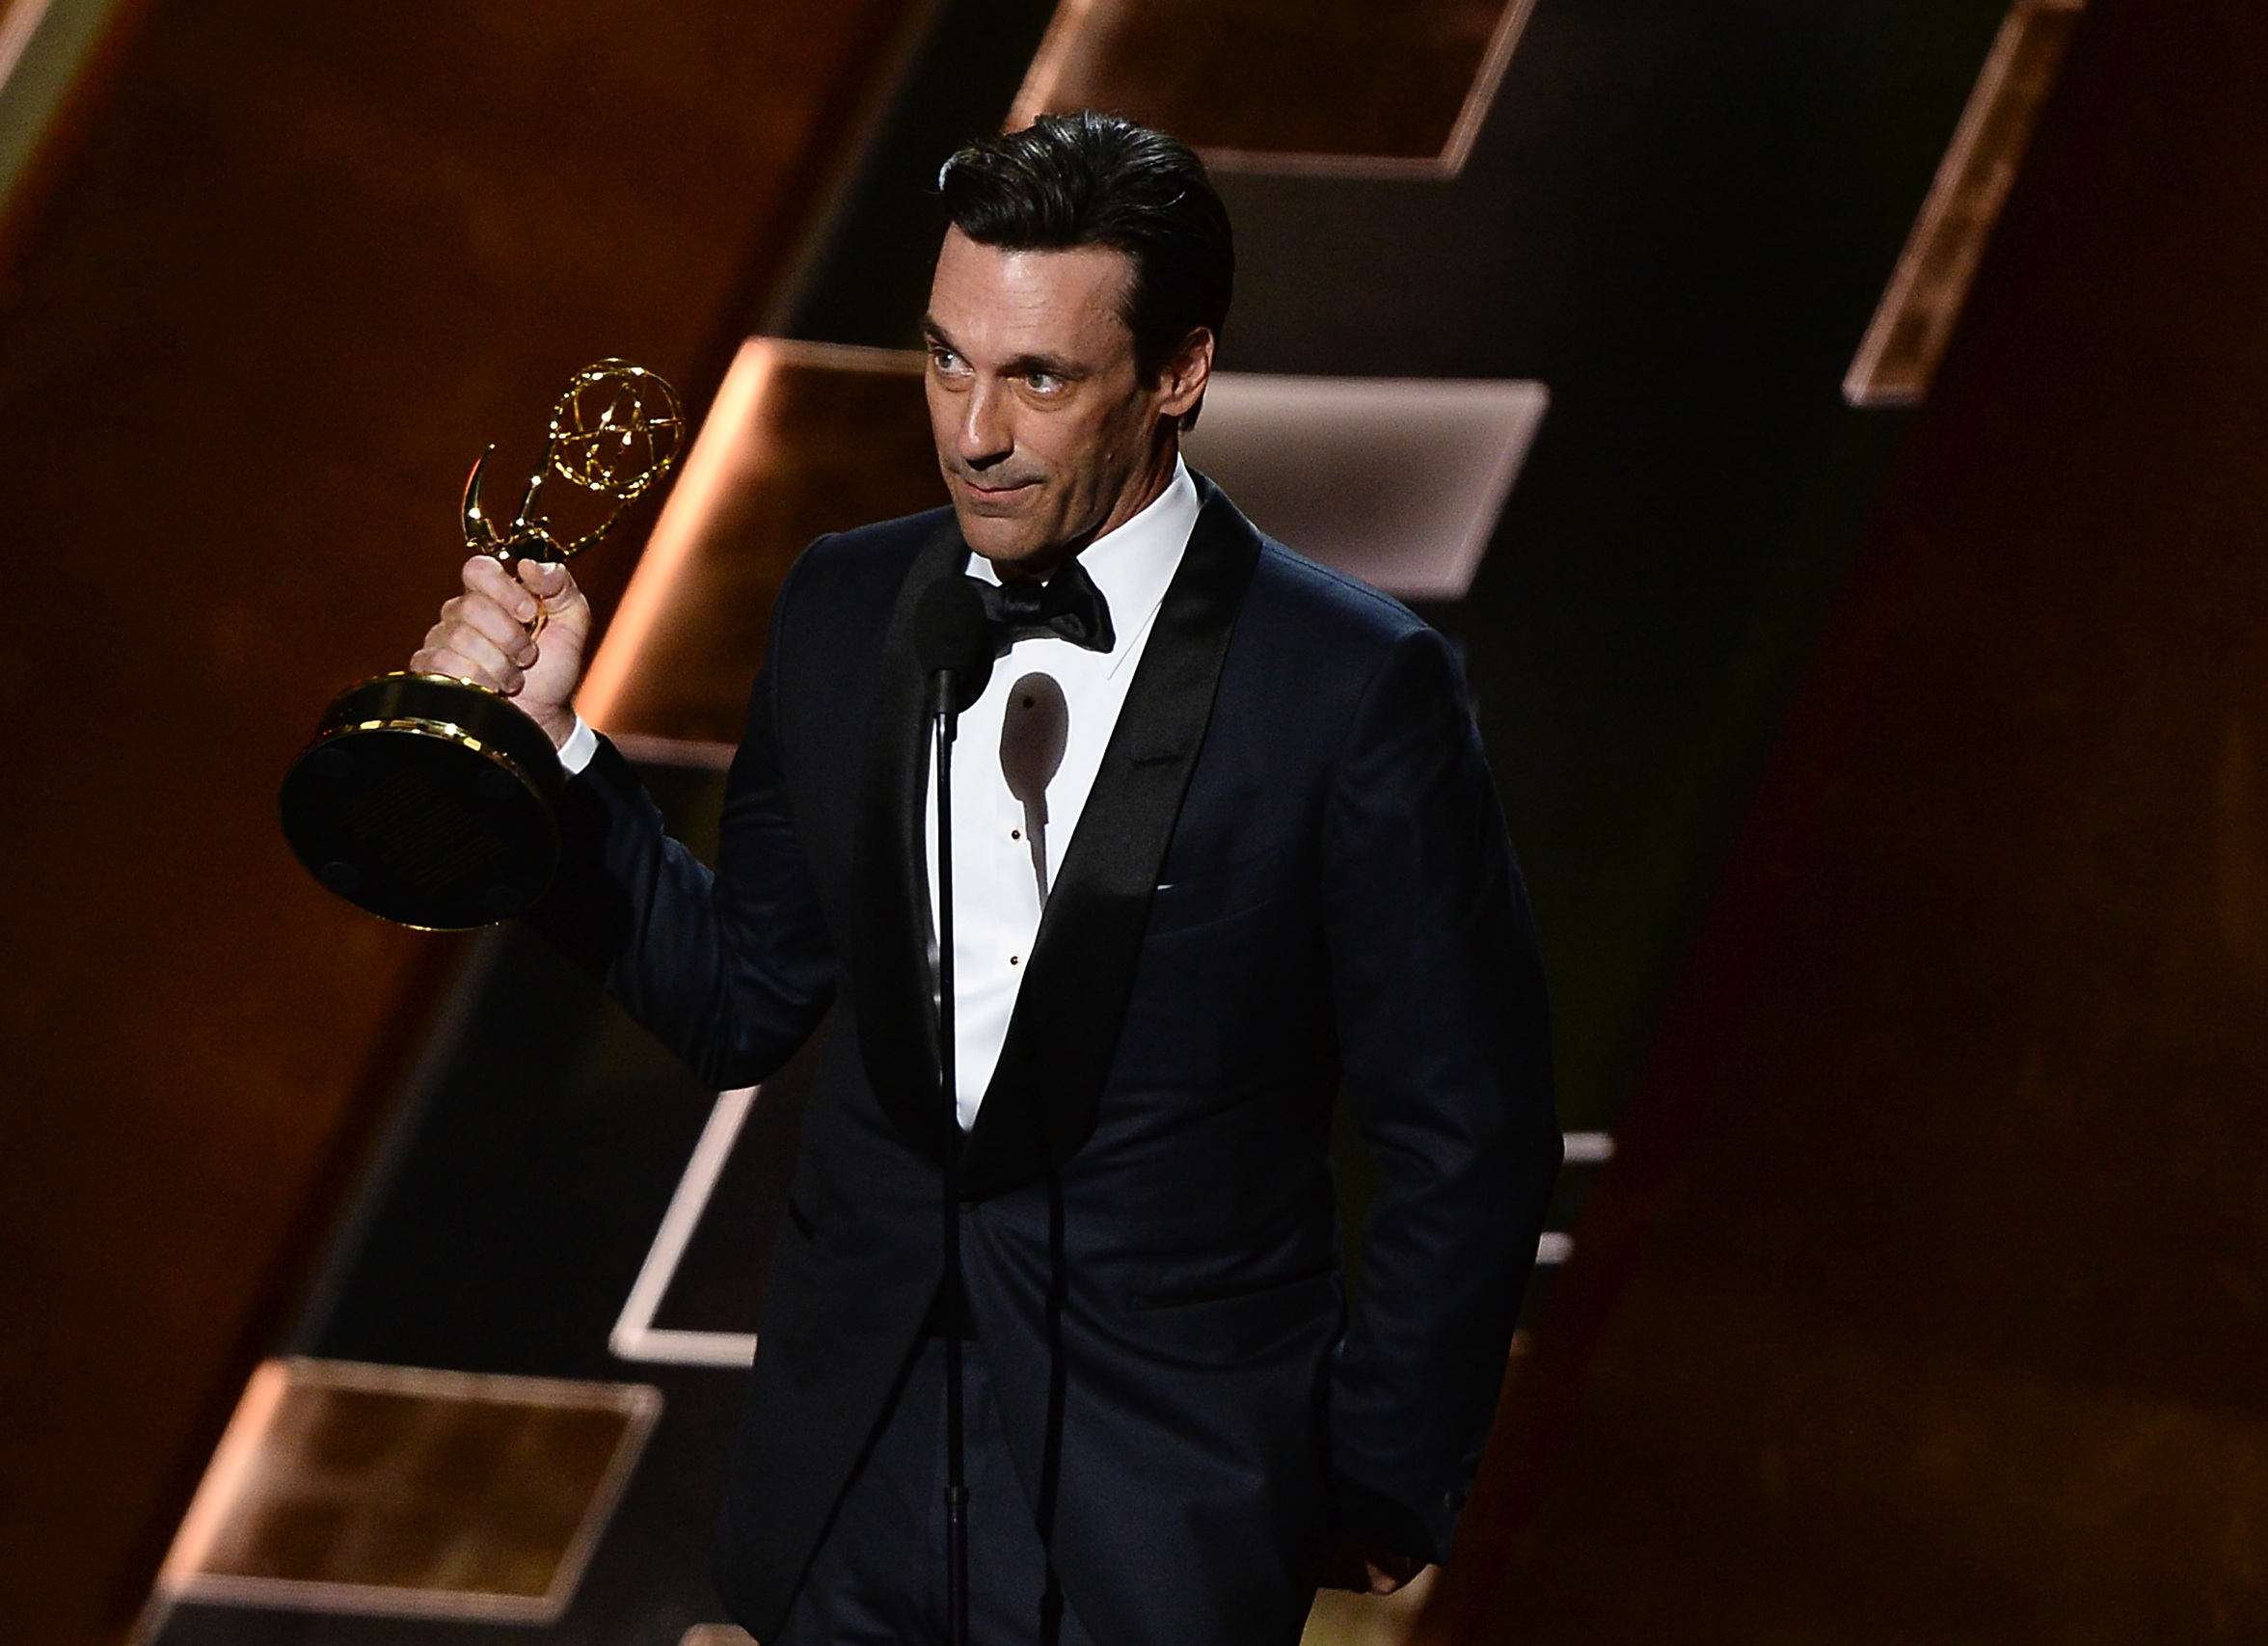 Image #: 39557467    Actor Jon Hamm accepts the award for Outstanding Lead Actor in a Drama Series for 'Mad Men' onstage duri